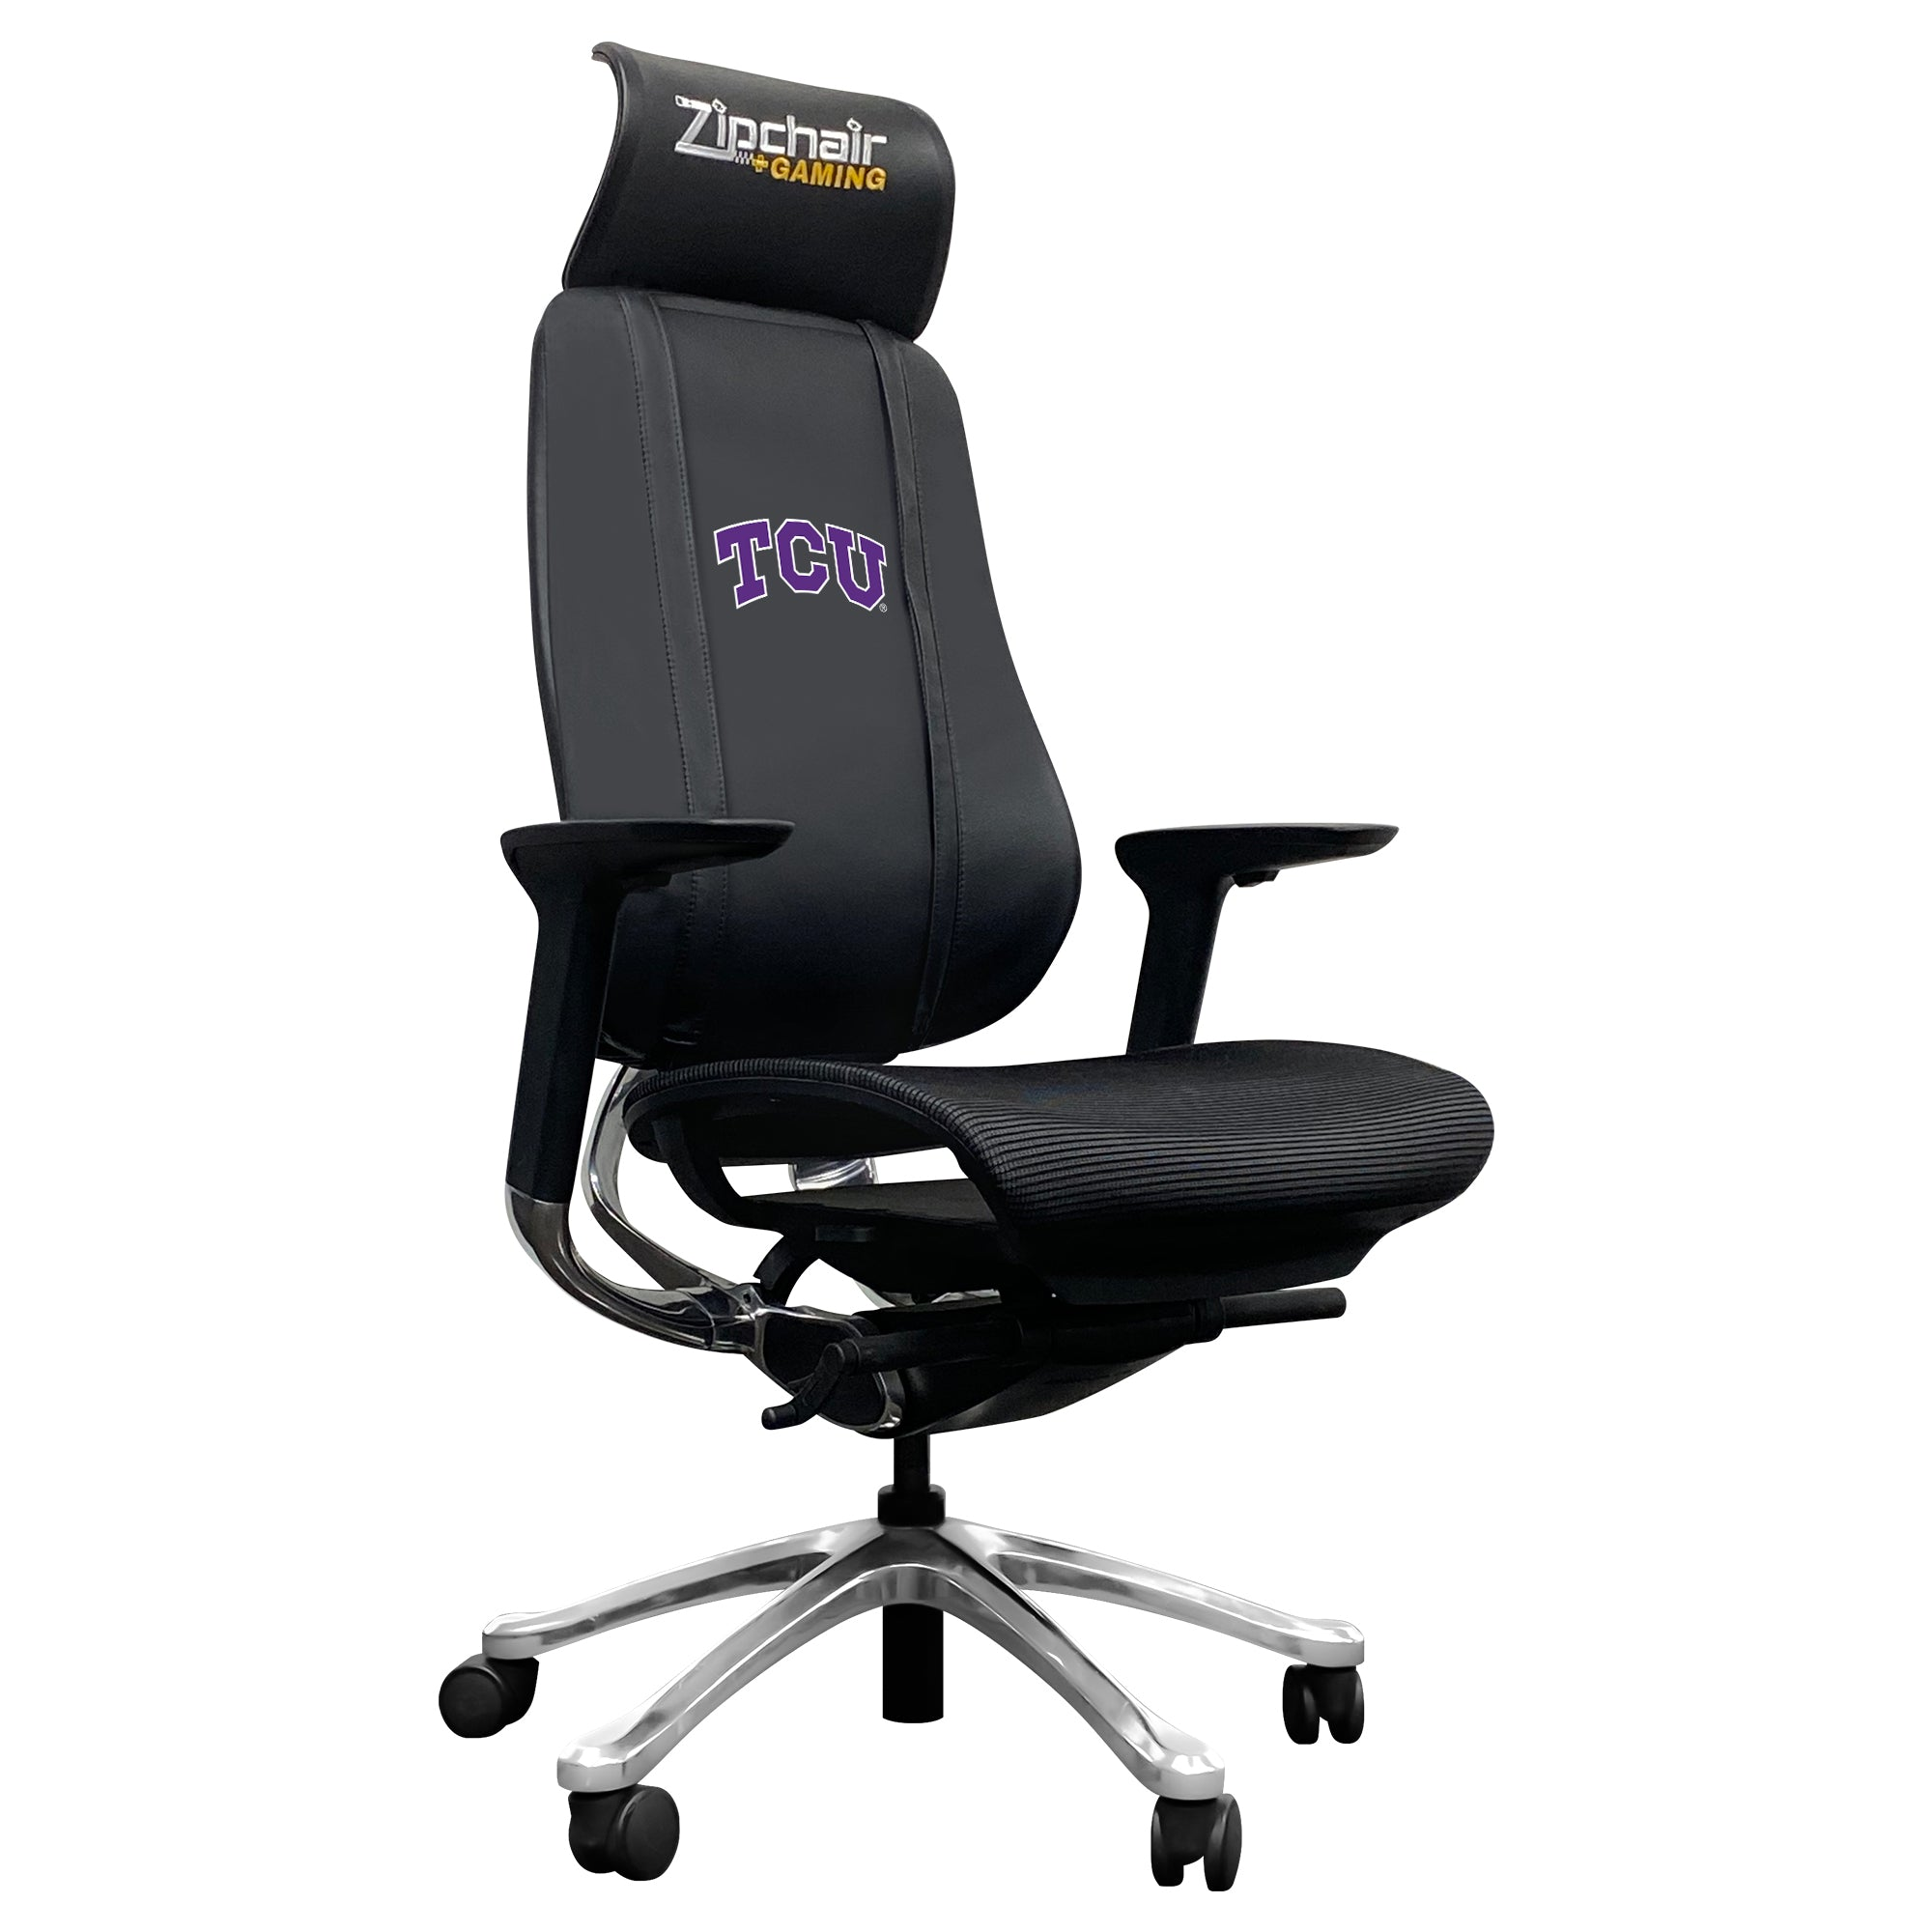 PhantomX Gaming Chair with TCU Horned Frogs Primary